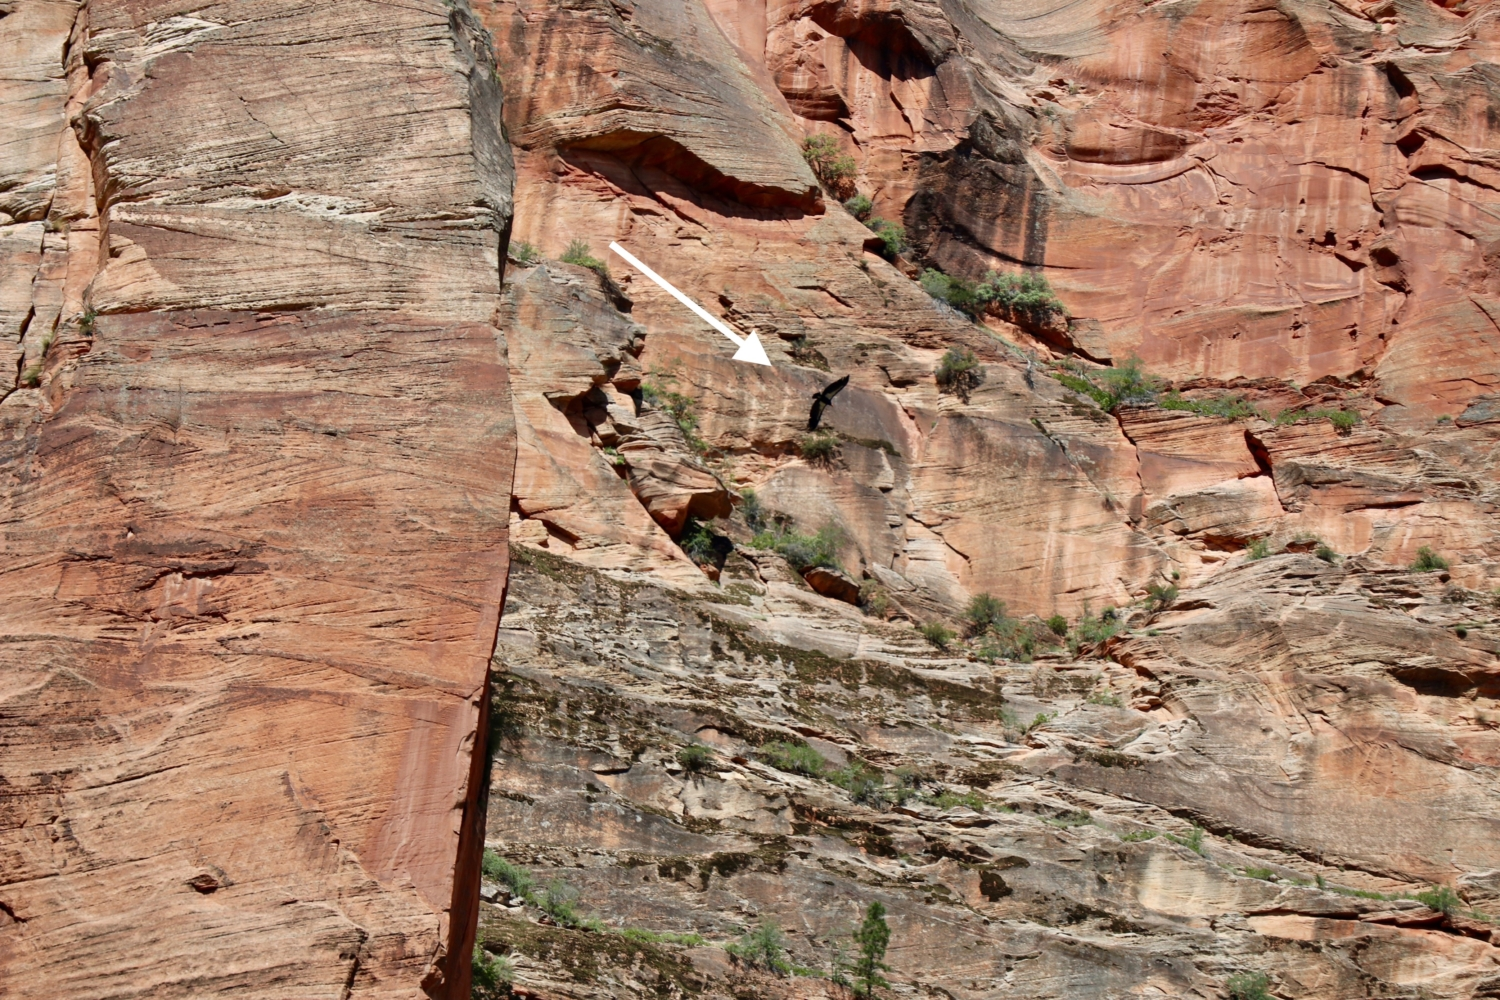 Condor in Zion National Park